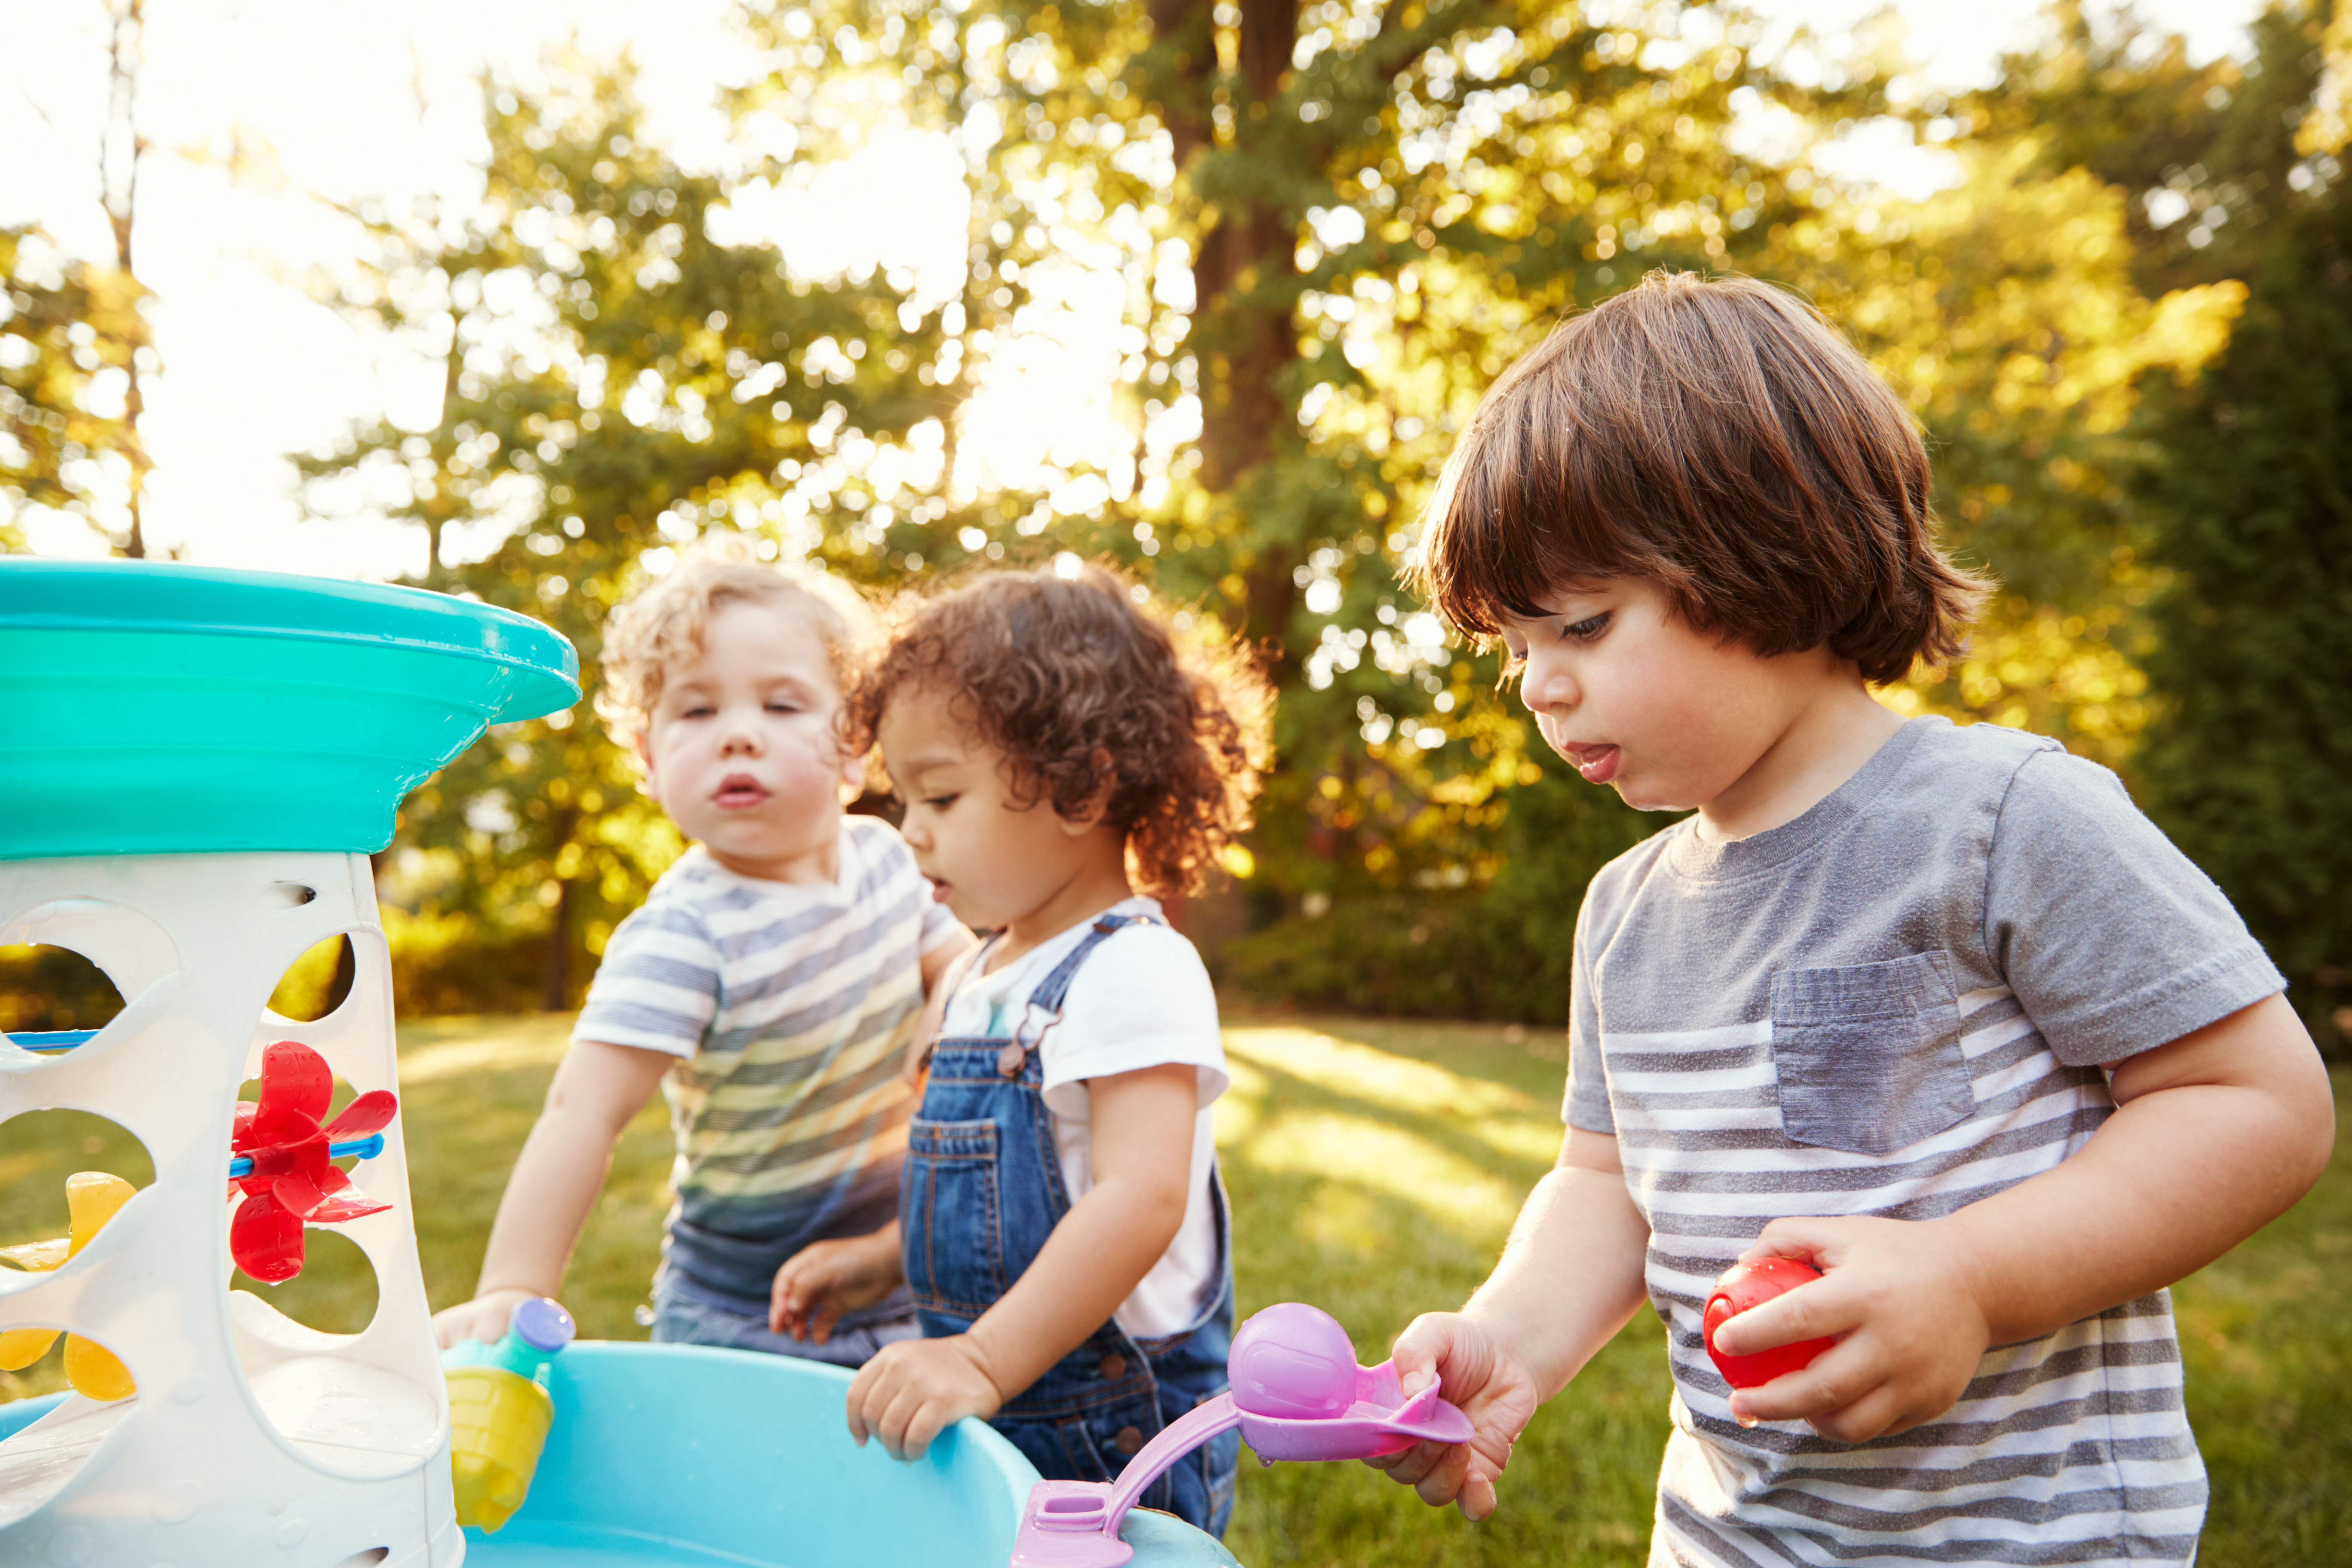 THE EARLY INTERVENTION PROGRAM (EIP) IS A PUBLIC PROGRAM FUNDED BY NEW JERSEY AND COUNTY GOVERNMENTS